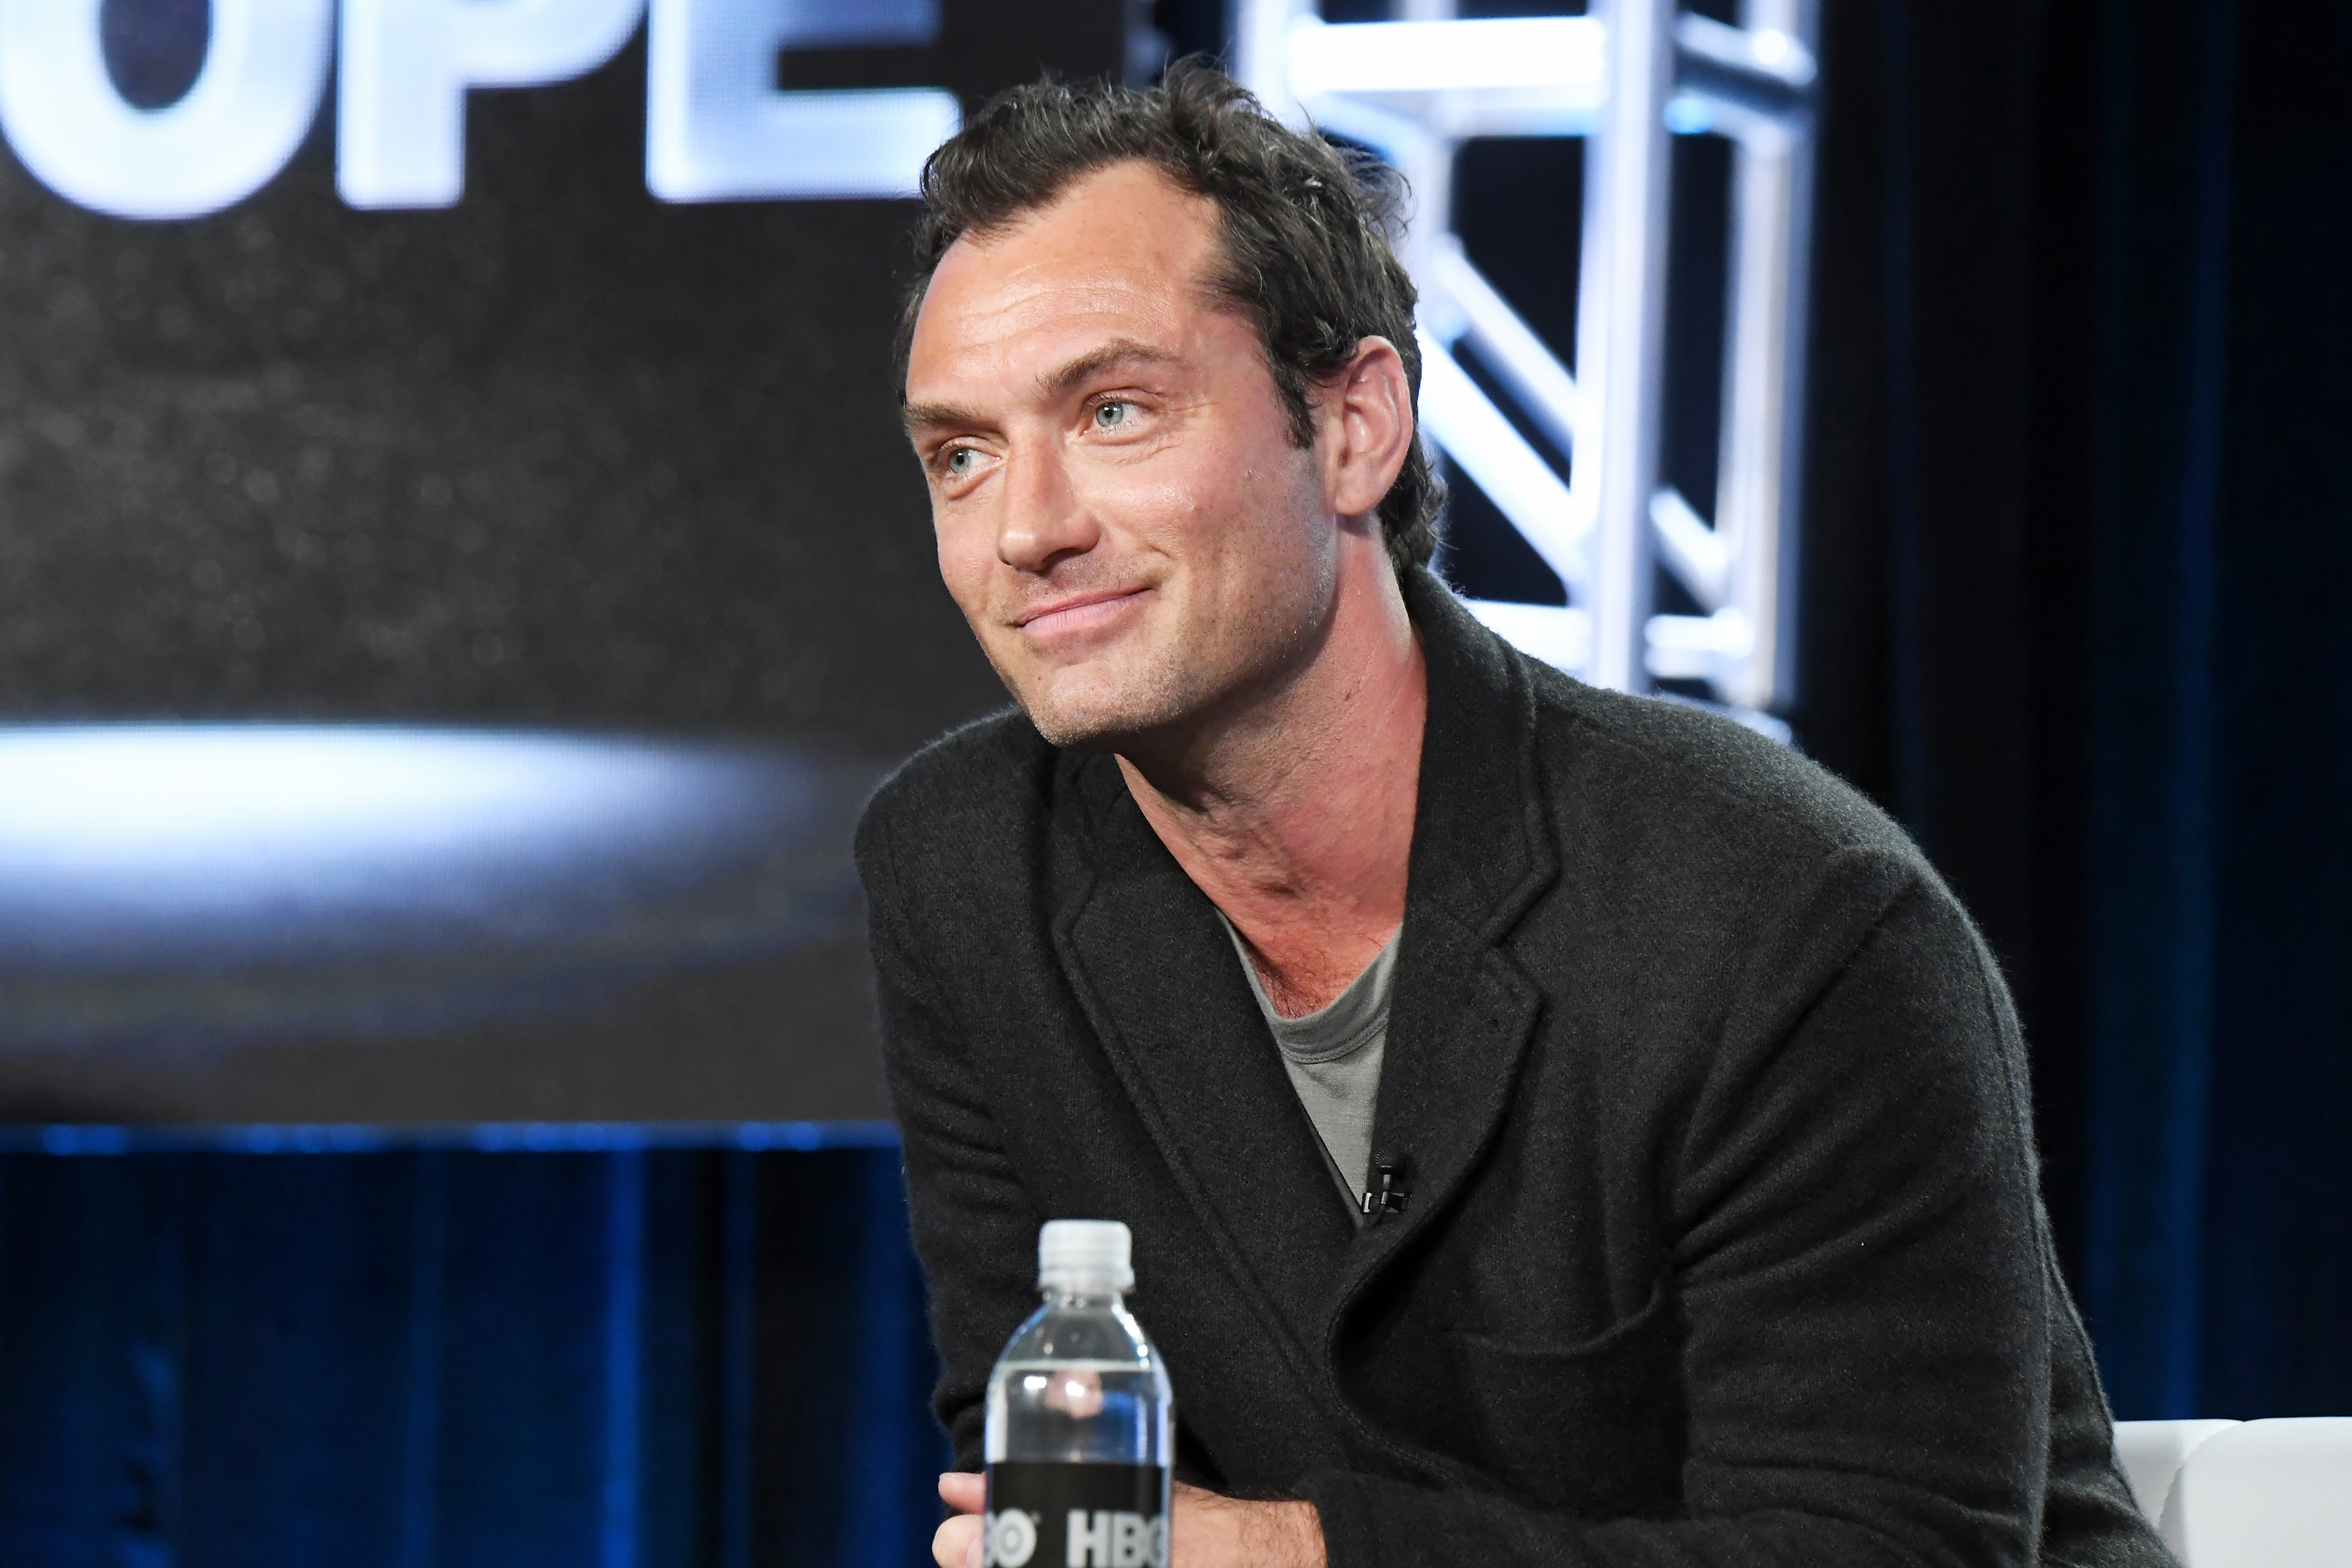 Jude Law Meets Fan After Causing Security Scare Time